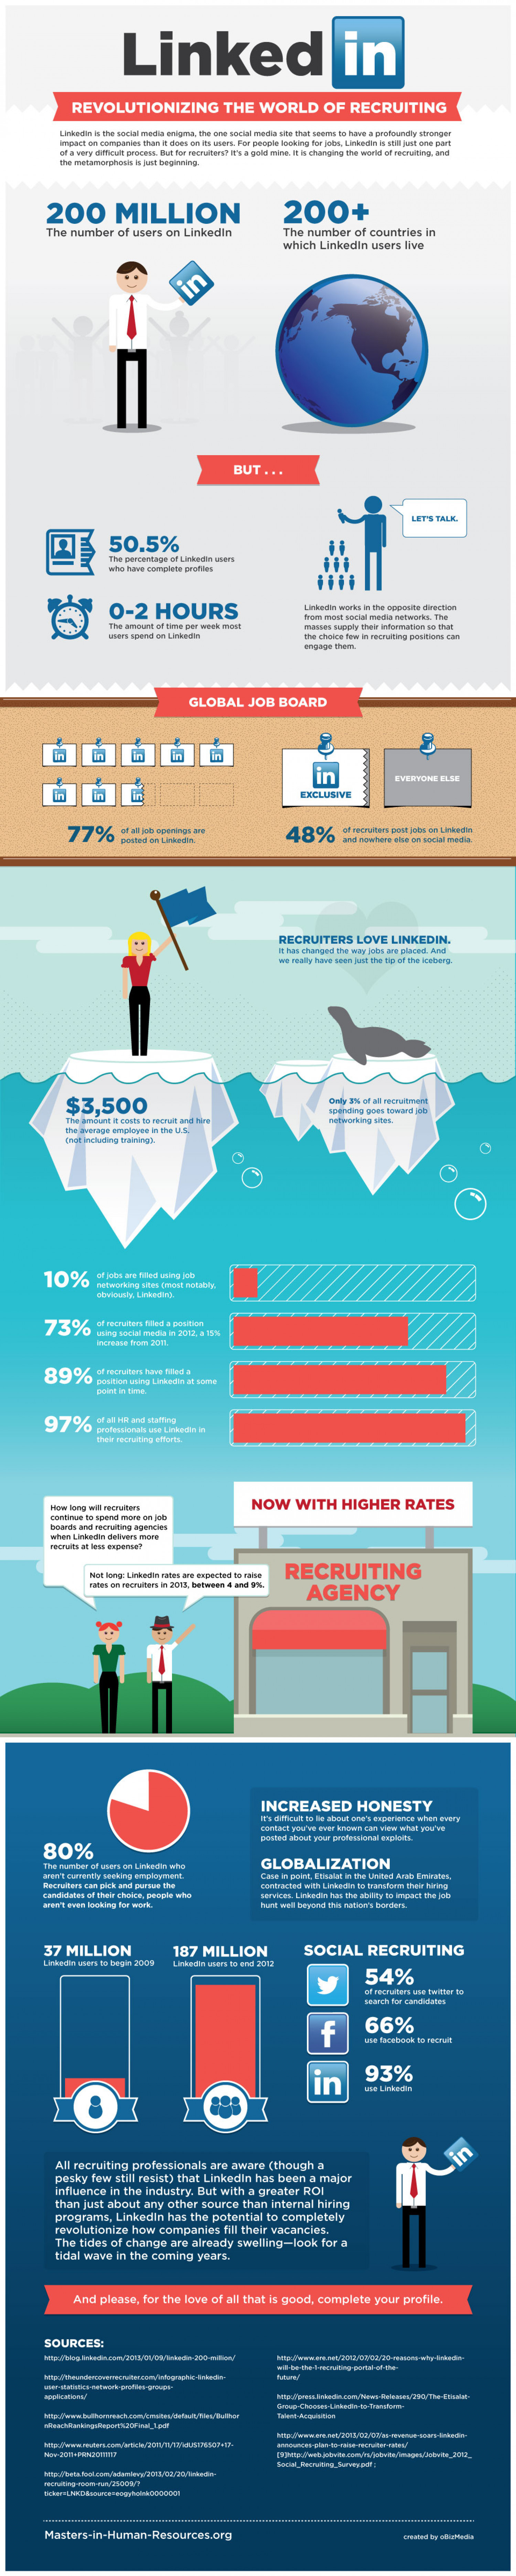 LinkedIn: Revolutionizing The World of Recruiting Infographic